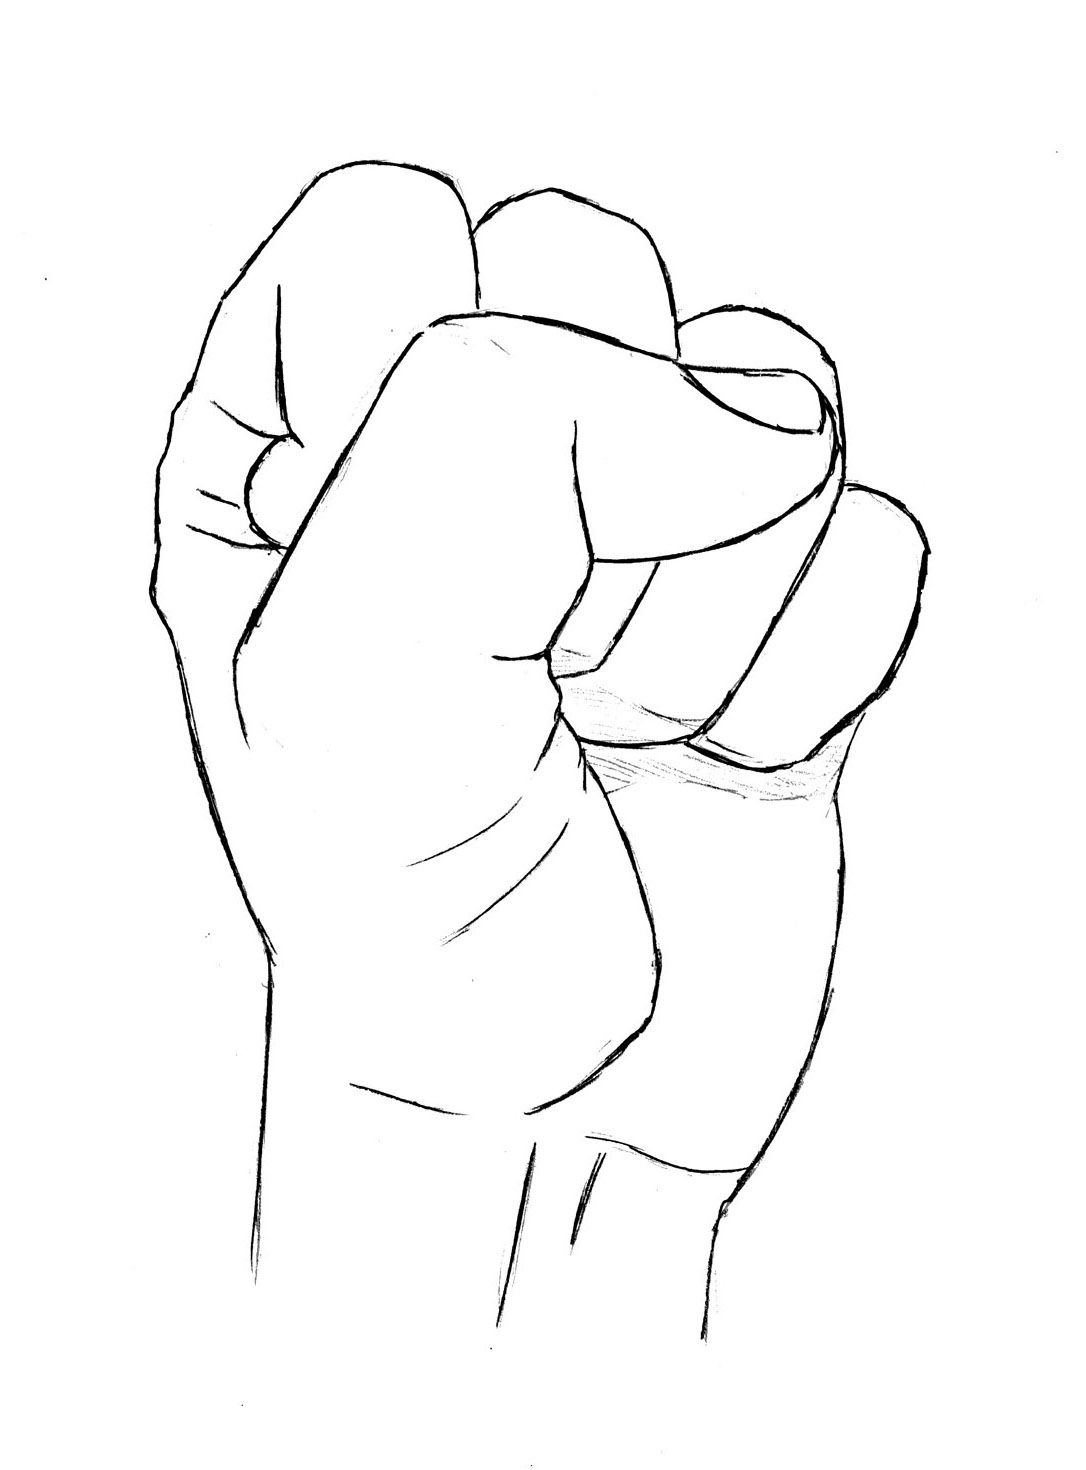 Drawing lessons how to draw a hand clenched fist